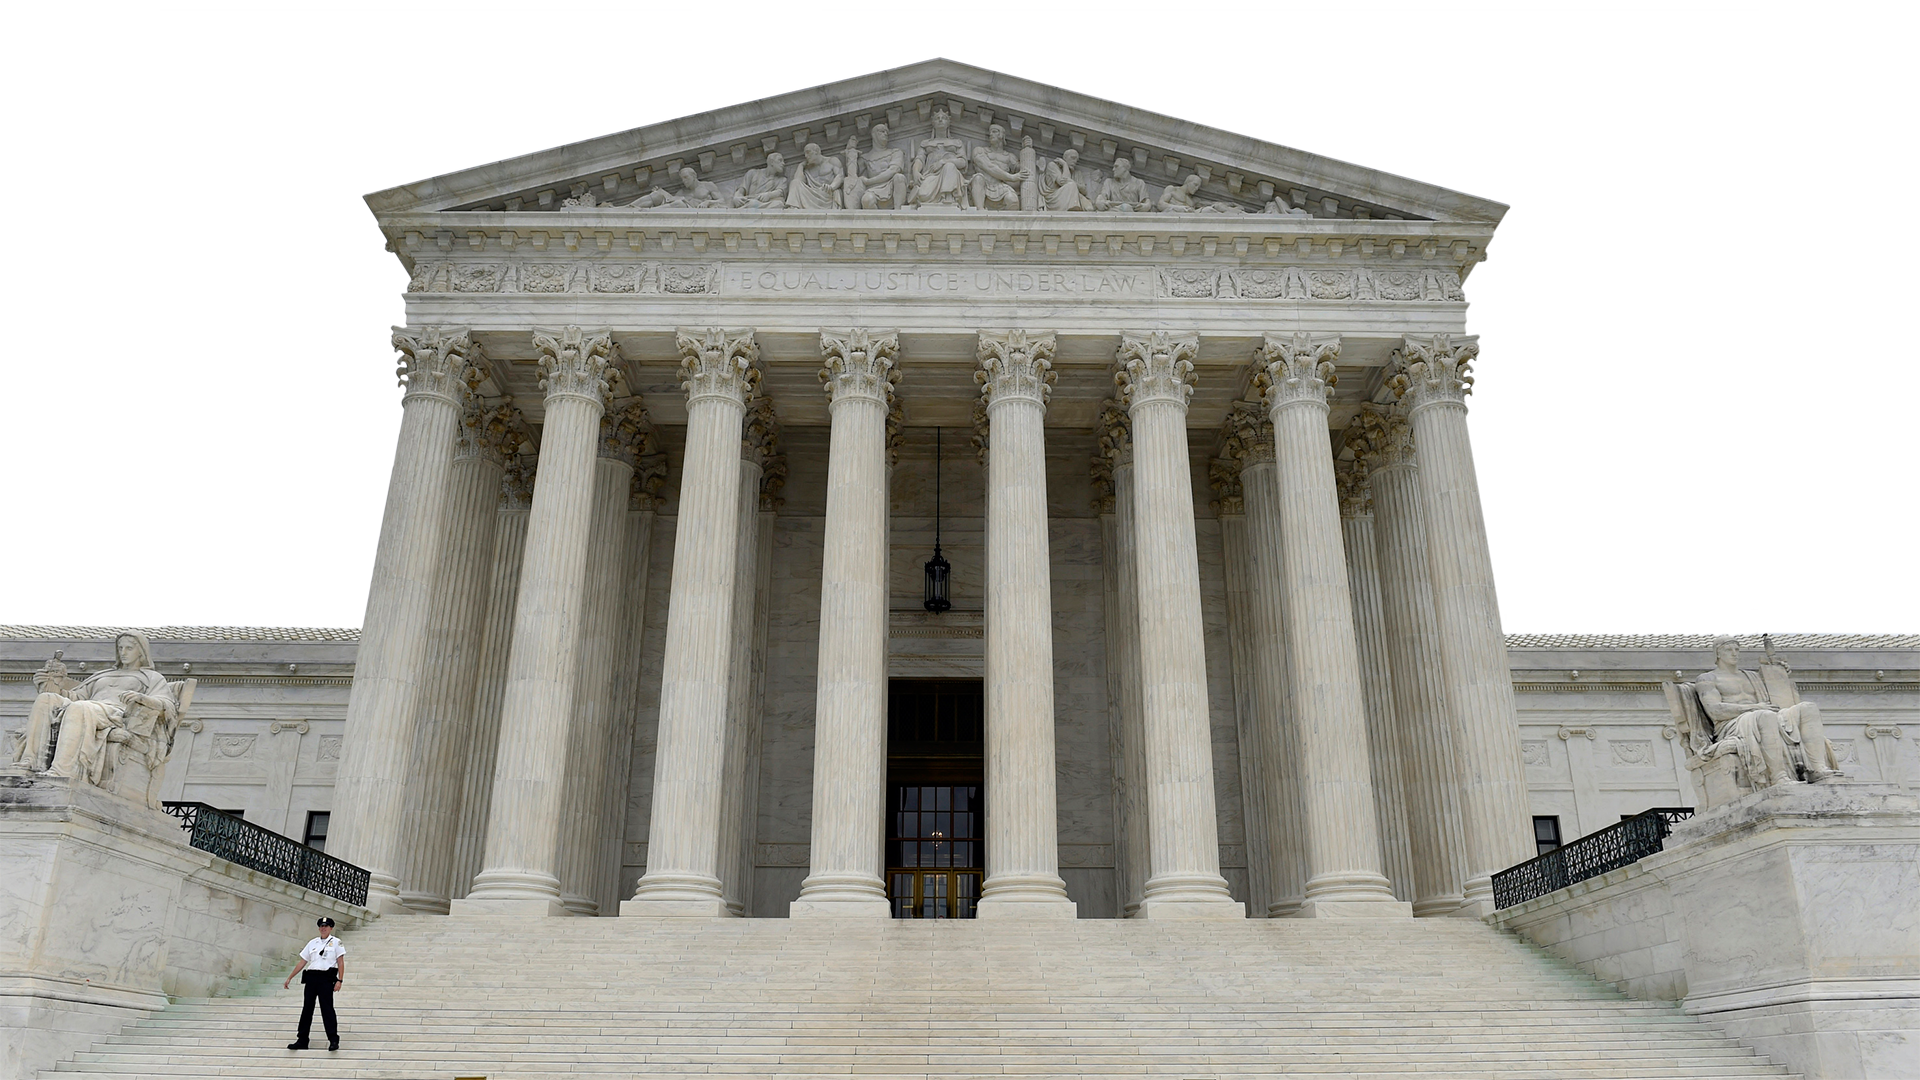 Court clipart building supreme court. Chapter the courts on